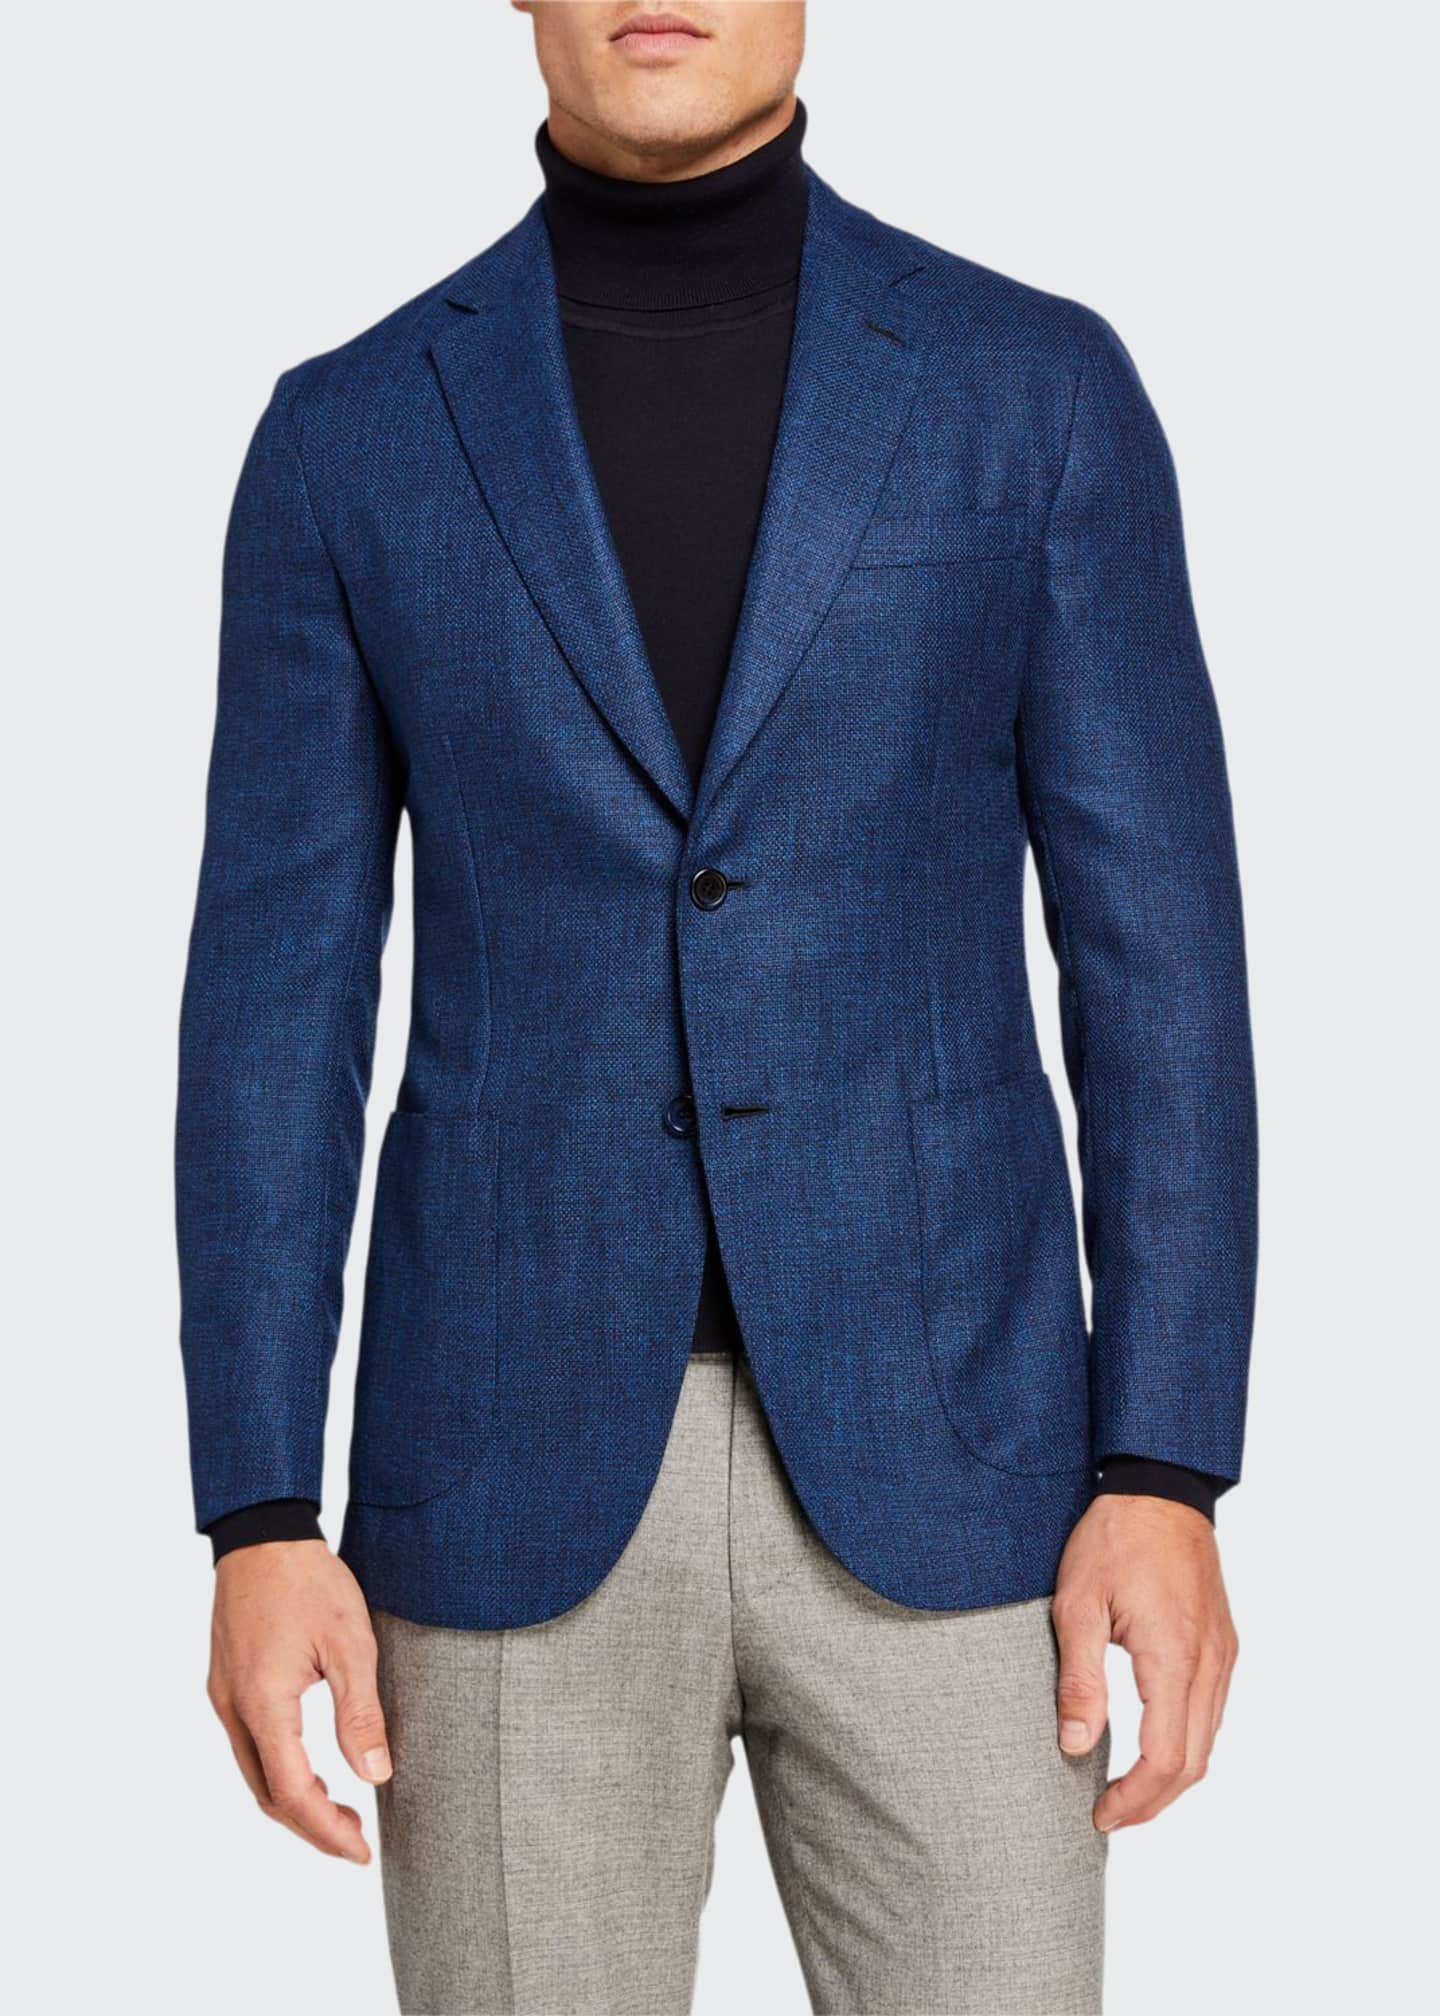 Brioni Men's High-Color Textured Two-Button Jacket